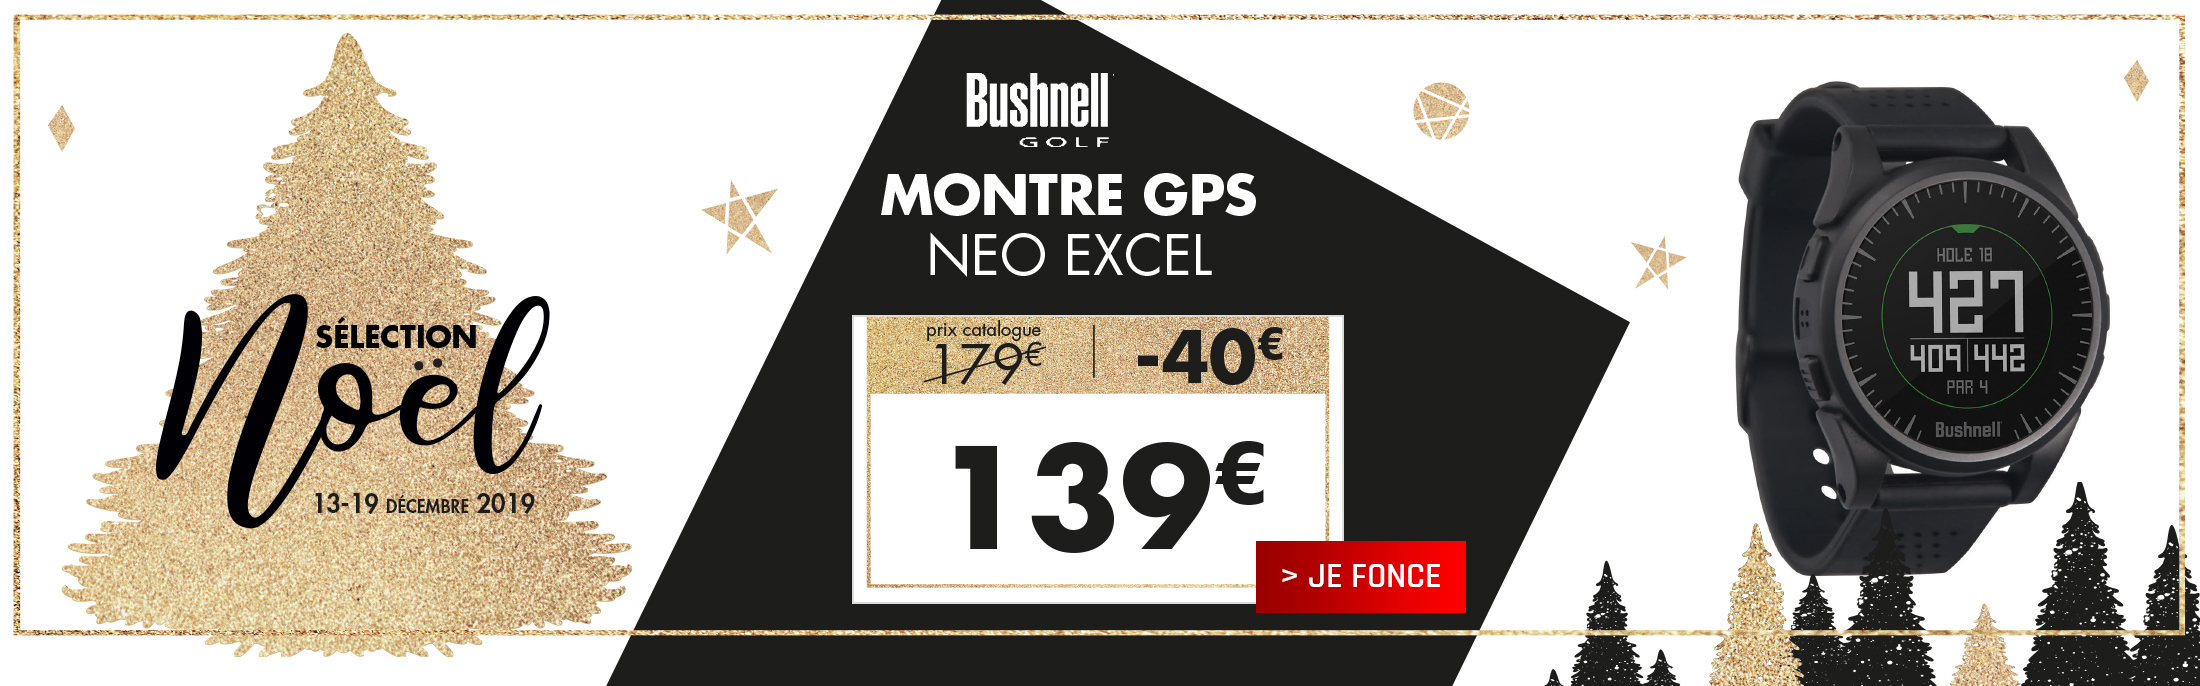 OFFRE BUSHNELL NEO EXCEL